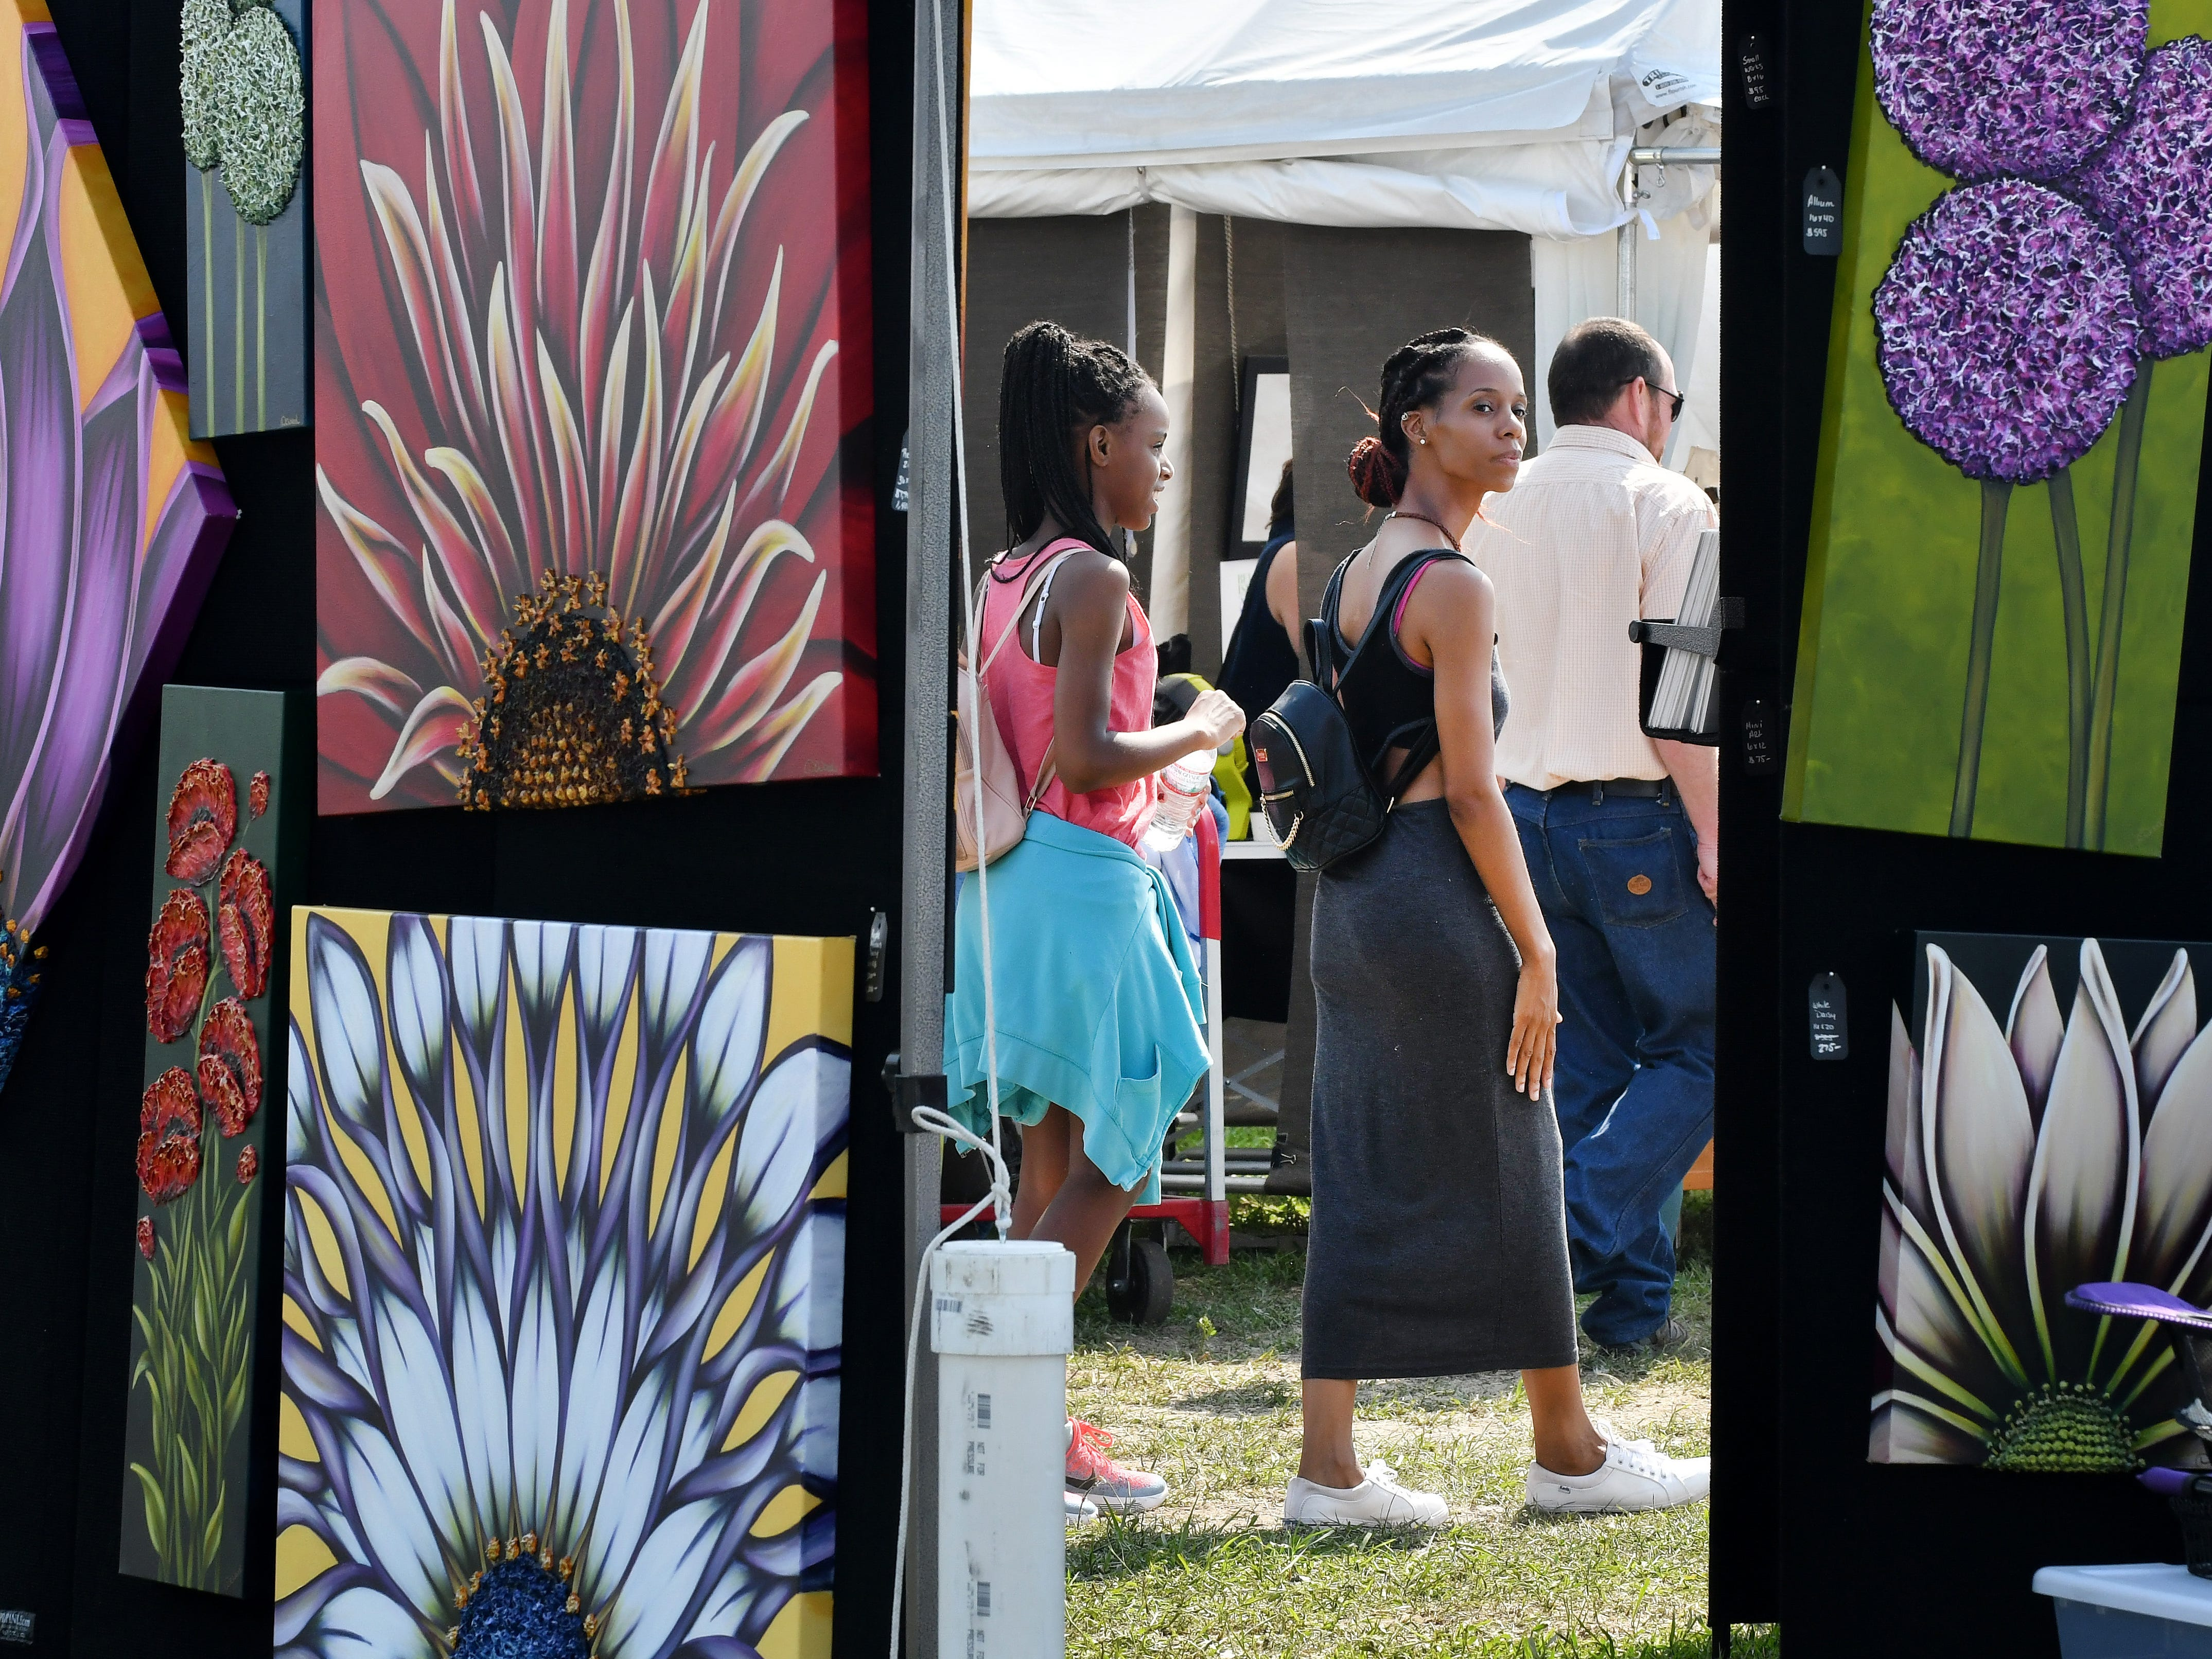 Autumn Brown, 11 and Nakia Camp wonder past the artwork of Denise Cassidy Wood while visiting the Belle Isle Art Fair in Detroit on Aug. 5, 2018.